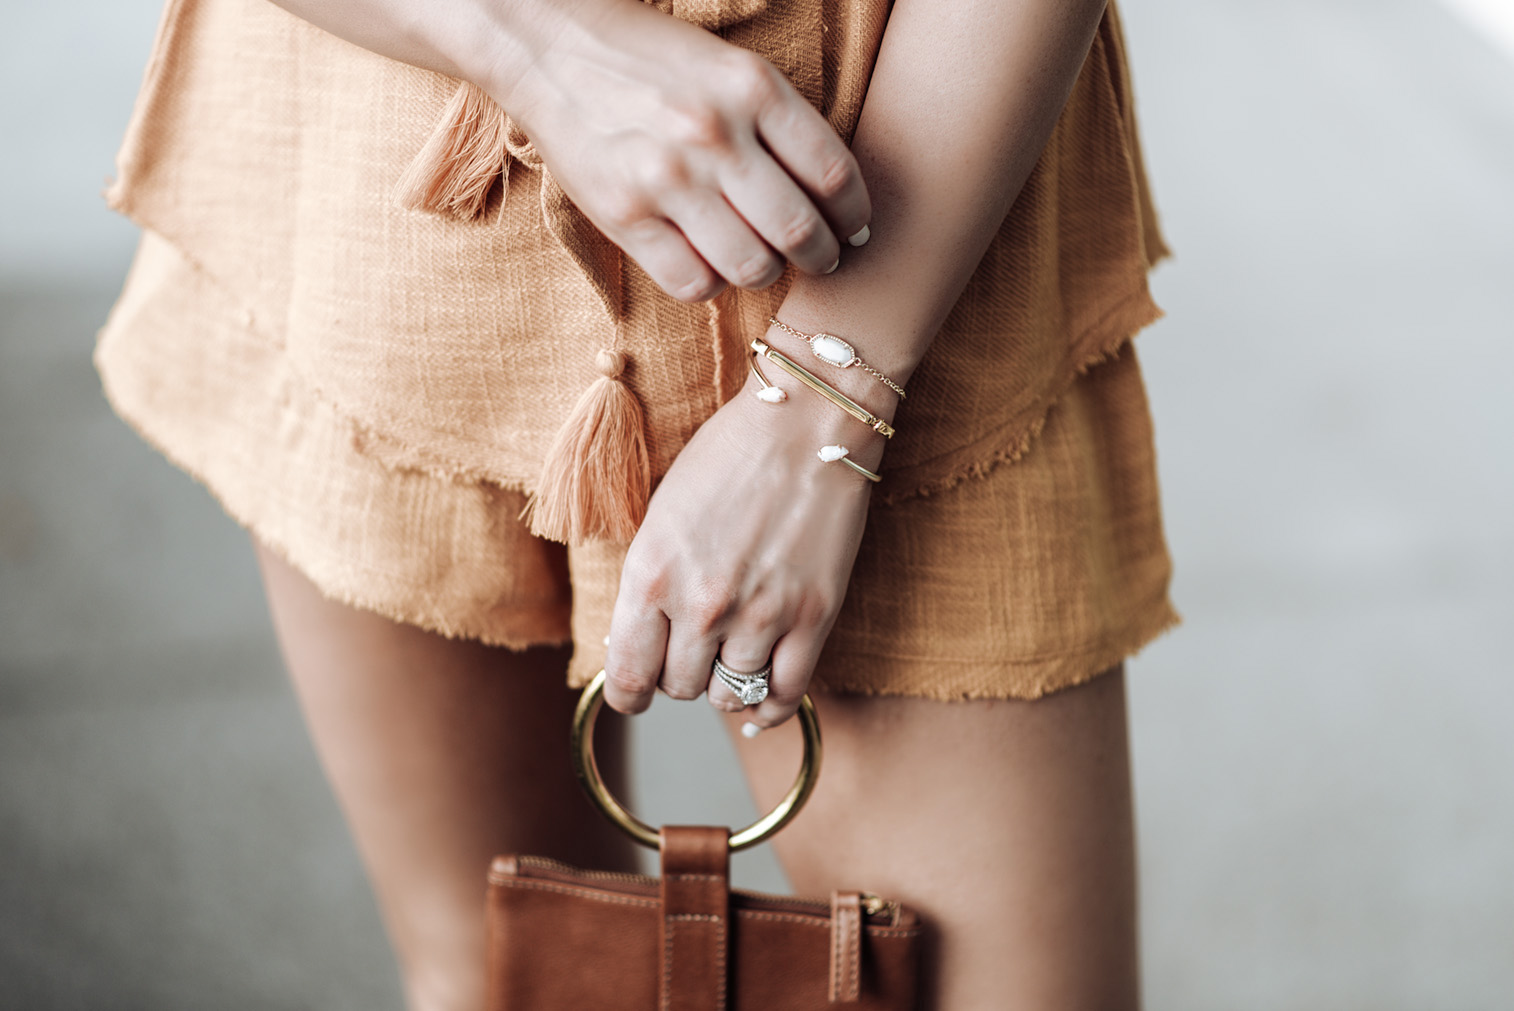 Free People So Simple Set (Size small)   Kendra Scott Elaina bracelet & the Jackson Pinch bracelet(Available at Kendra Scott at the Rice Village Shopping Center)   Mini Marie Pendant   Signature Bandle Monica Vinader   OTAAT/MYERS Collective Ring pouch